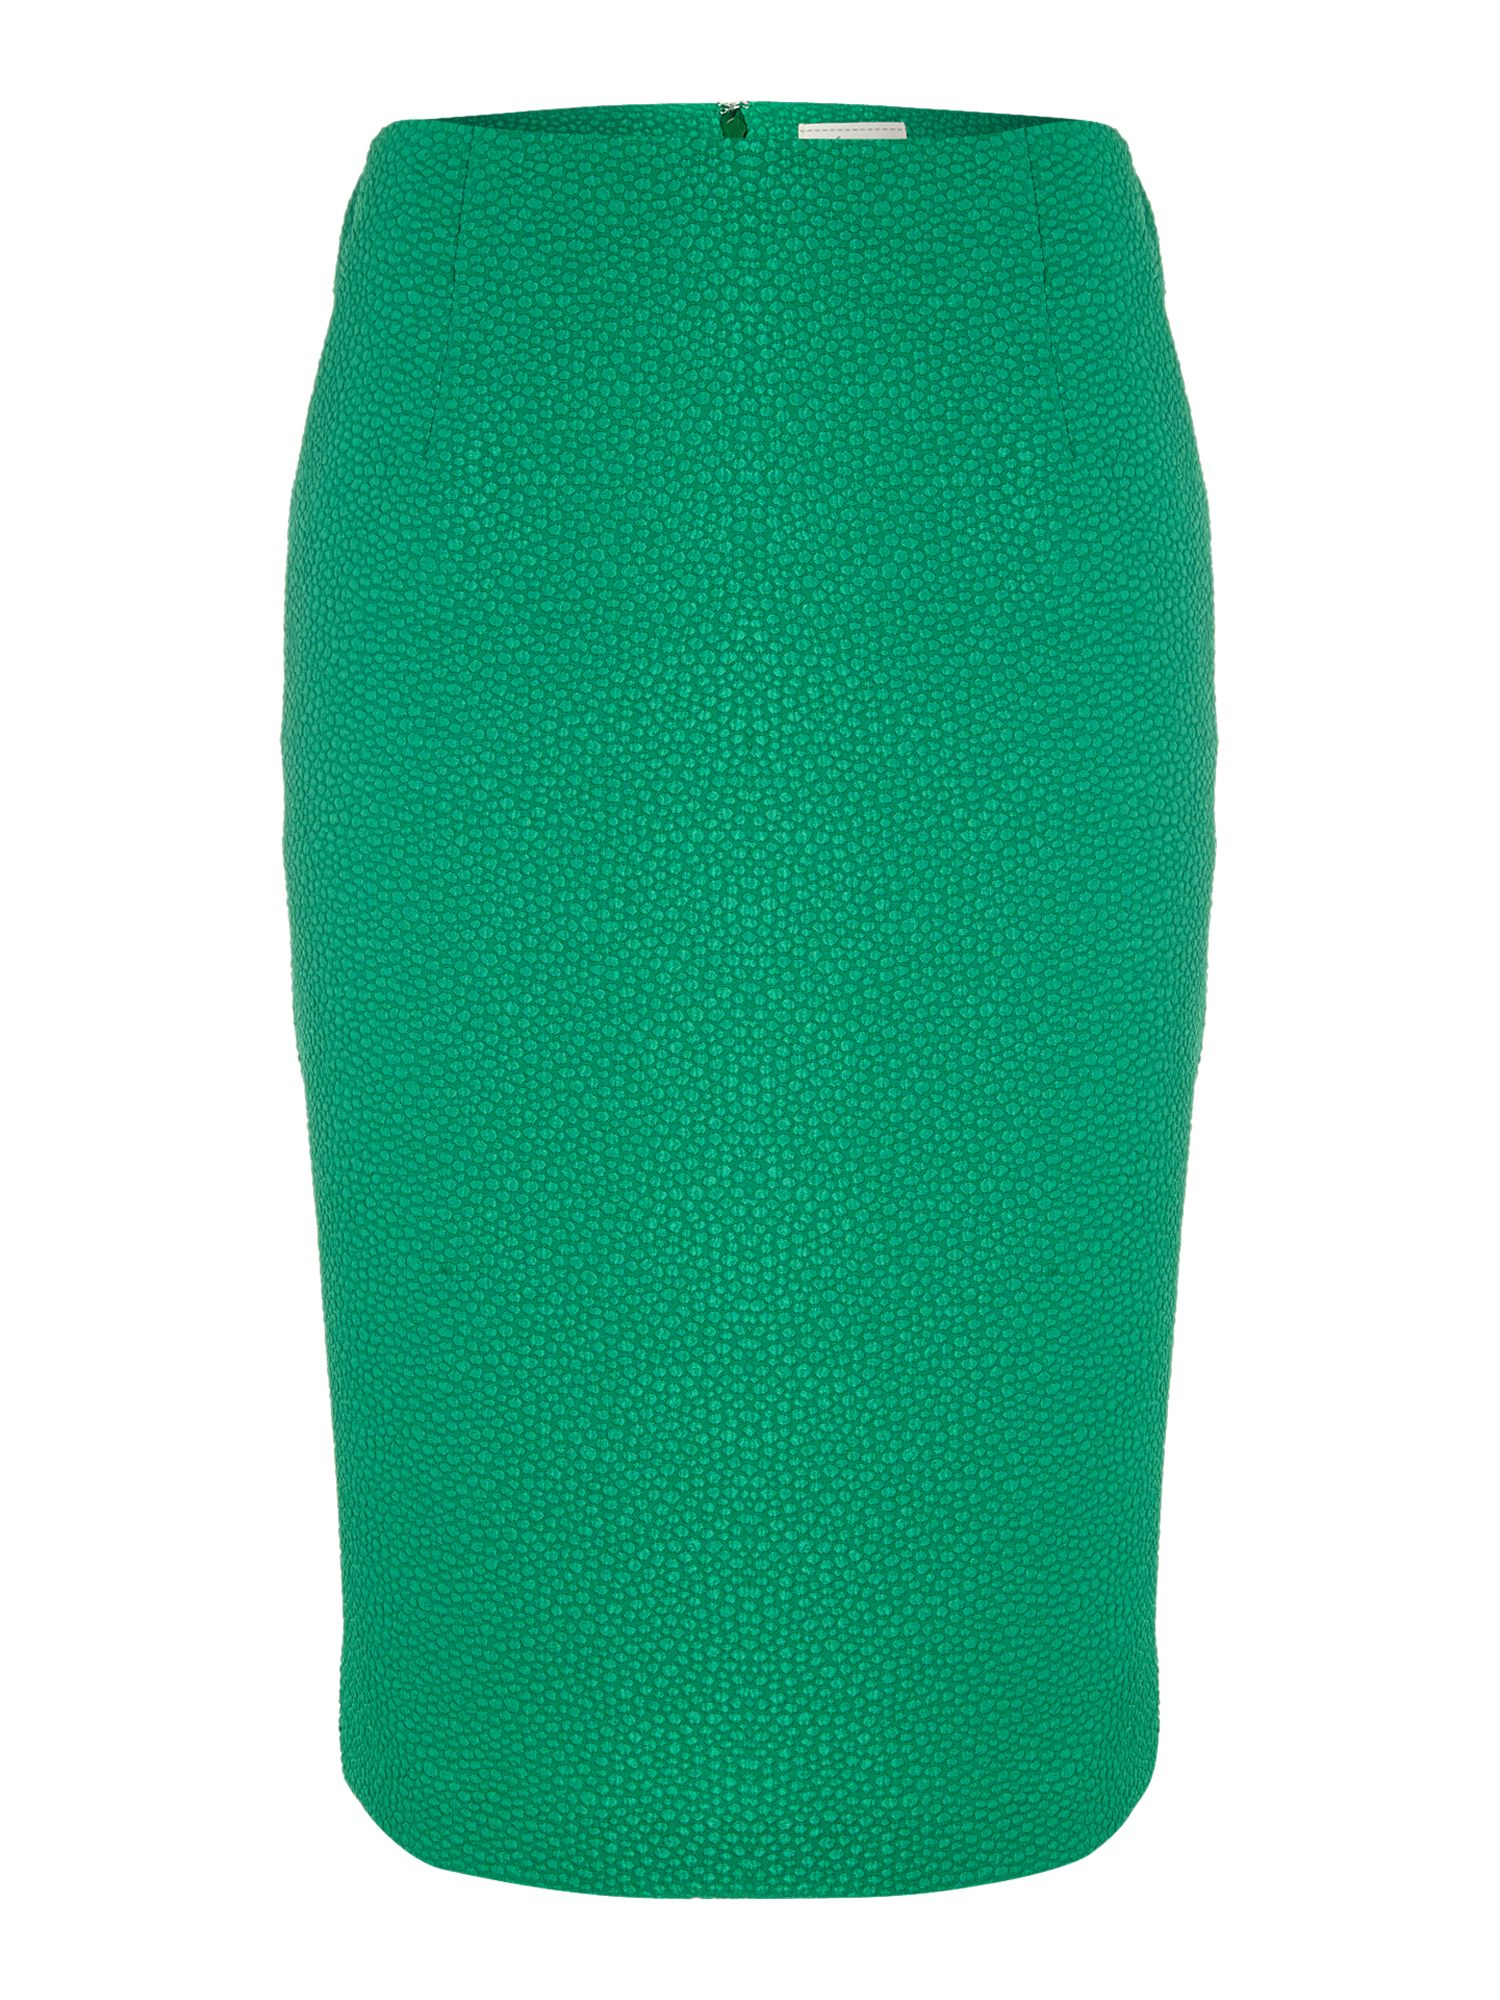 Ann bubble textured skirt